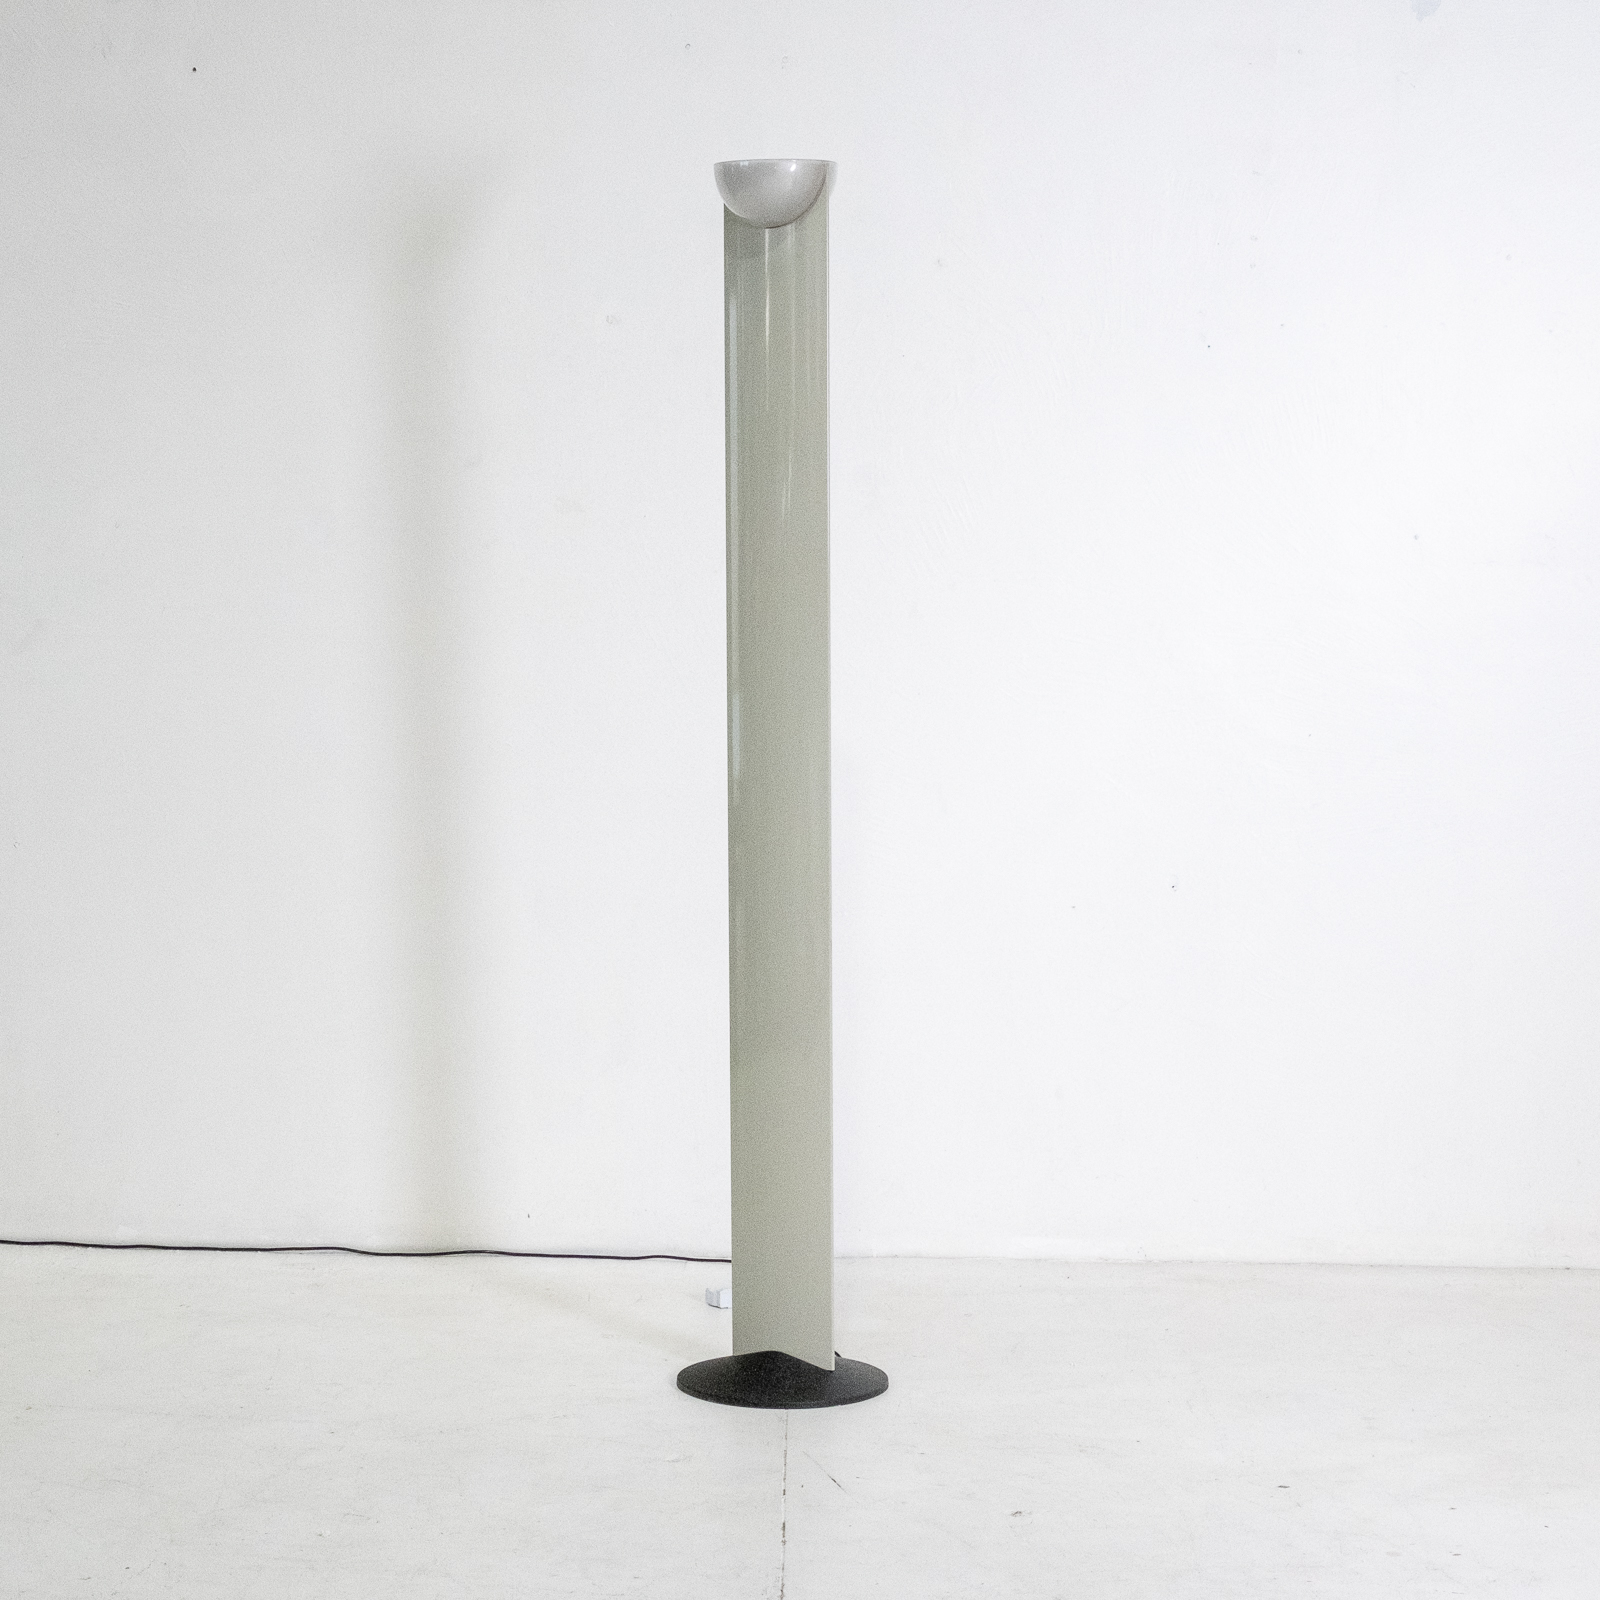 Adonis Tall Floor Lamp By Gianfranco Frattini For Luci Italia, 1980s, Italy 00010